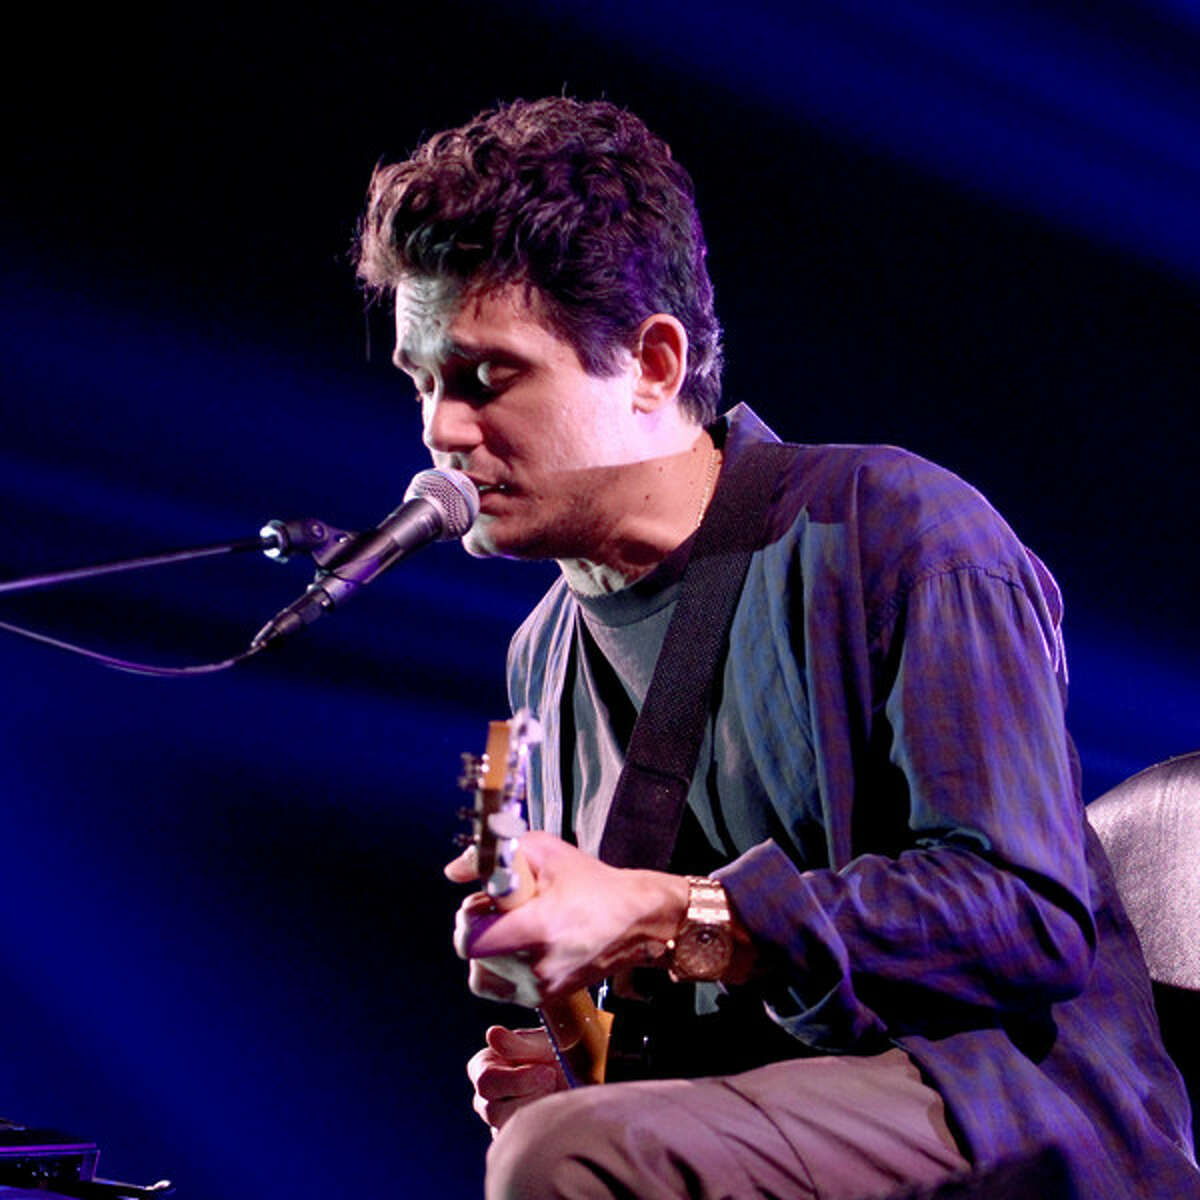 Singer-songwriter-guitarslingerJohn Mayer returns to the Capital Region for a show at the Times Union Center on Friday. Tickets.